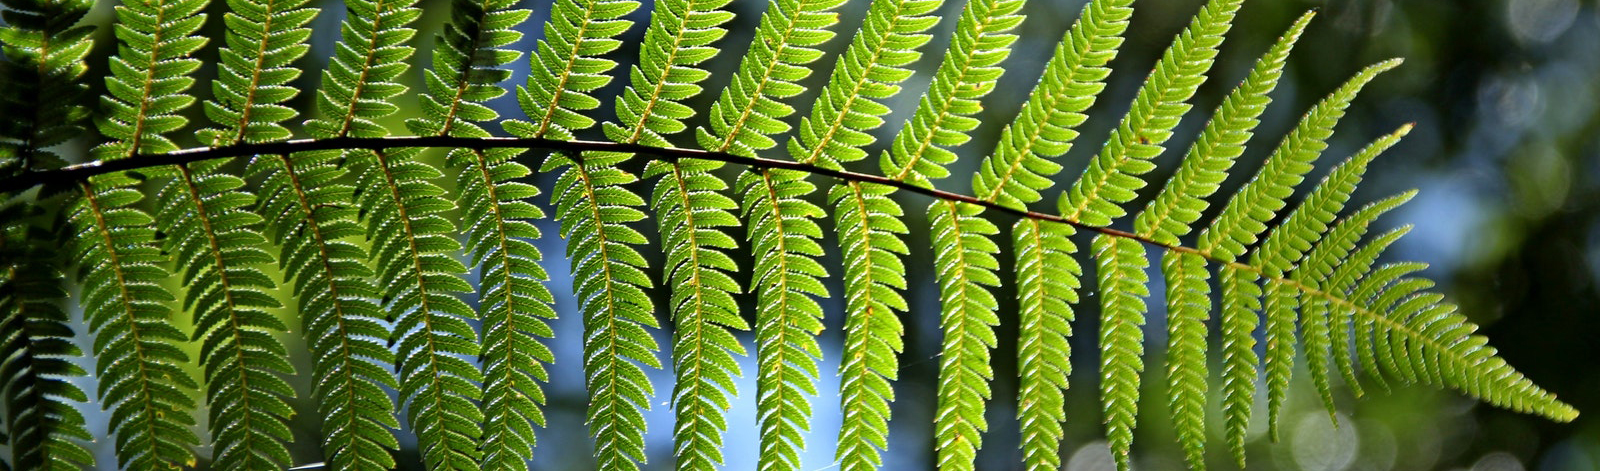 A vibrant fern, signifying growth and abundance